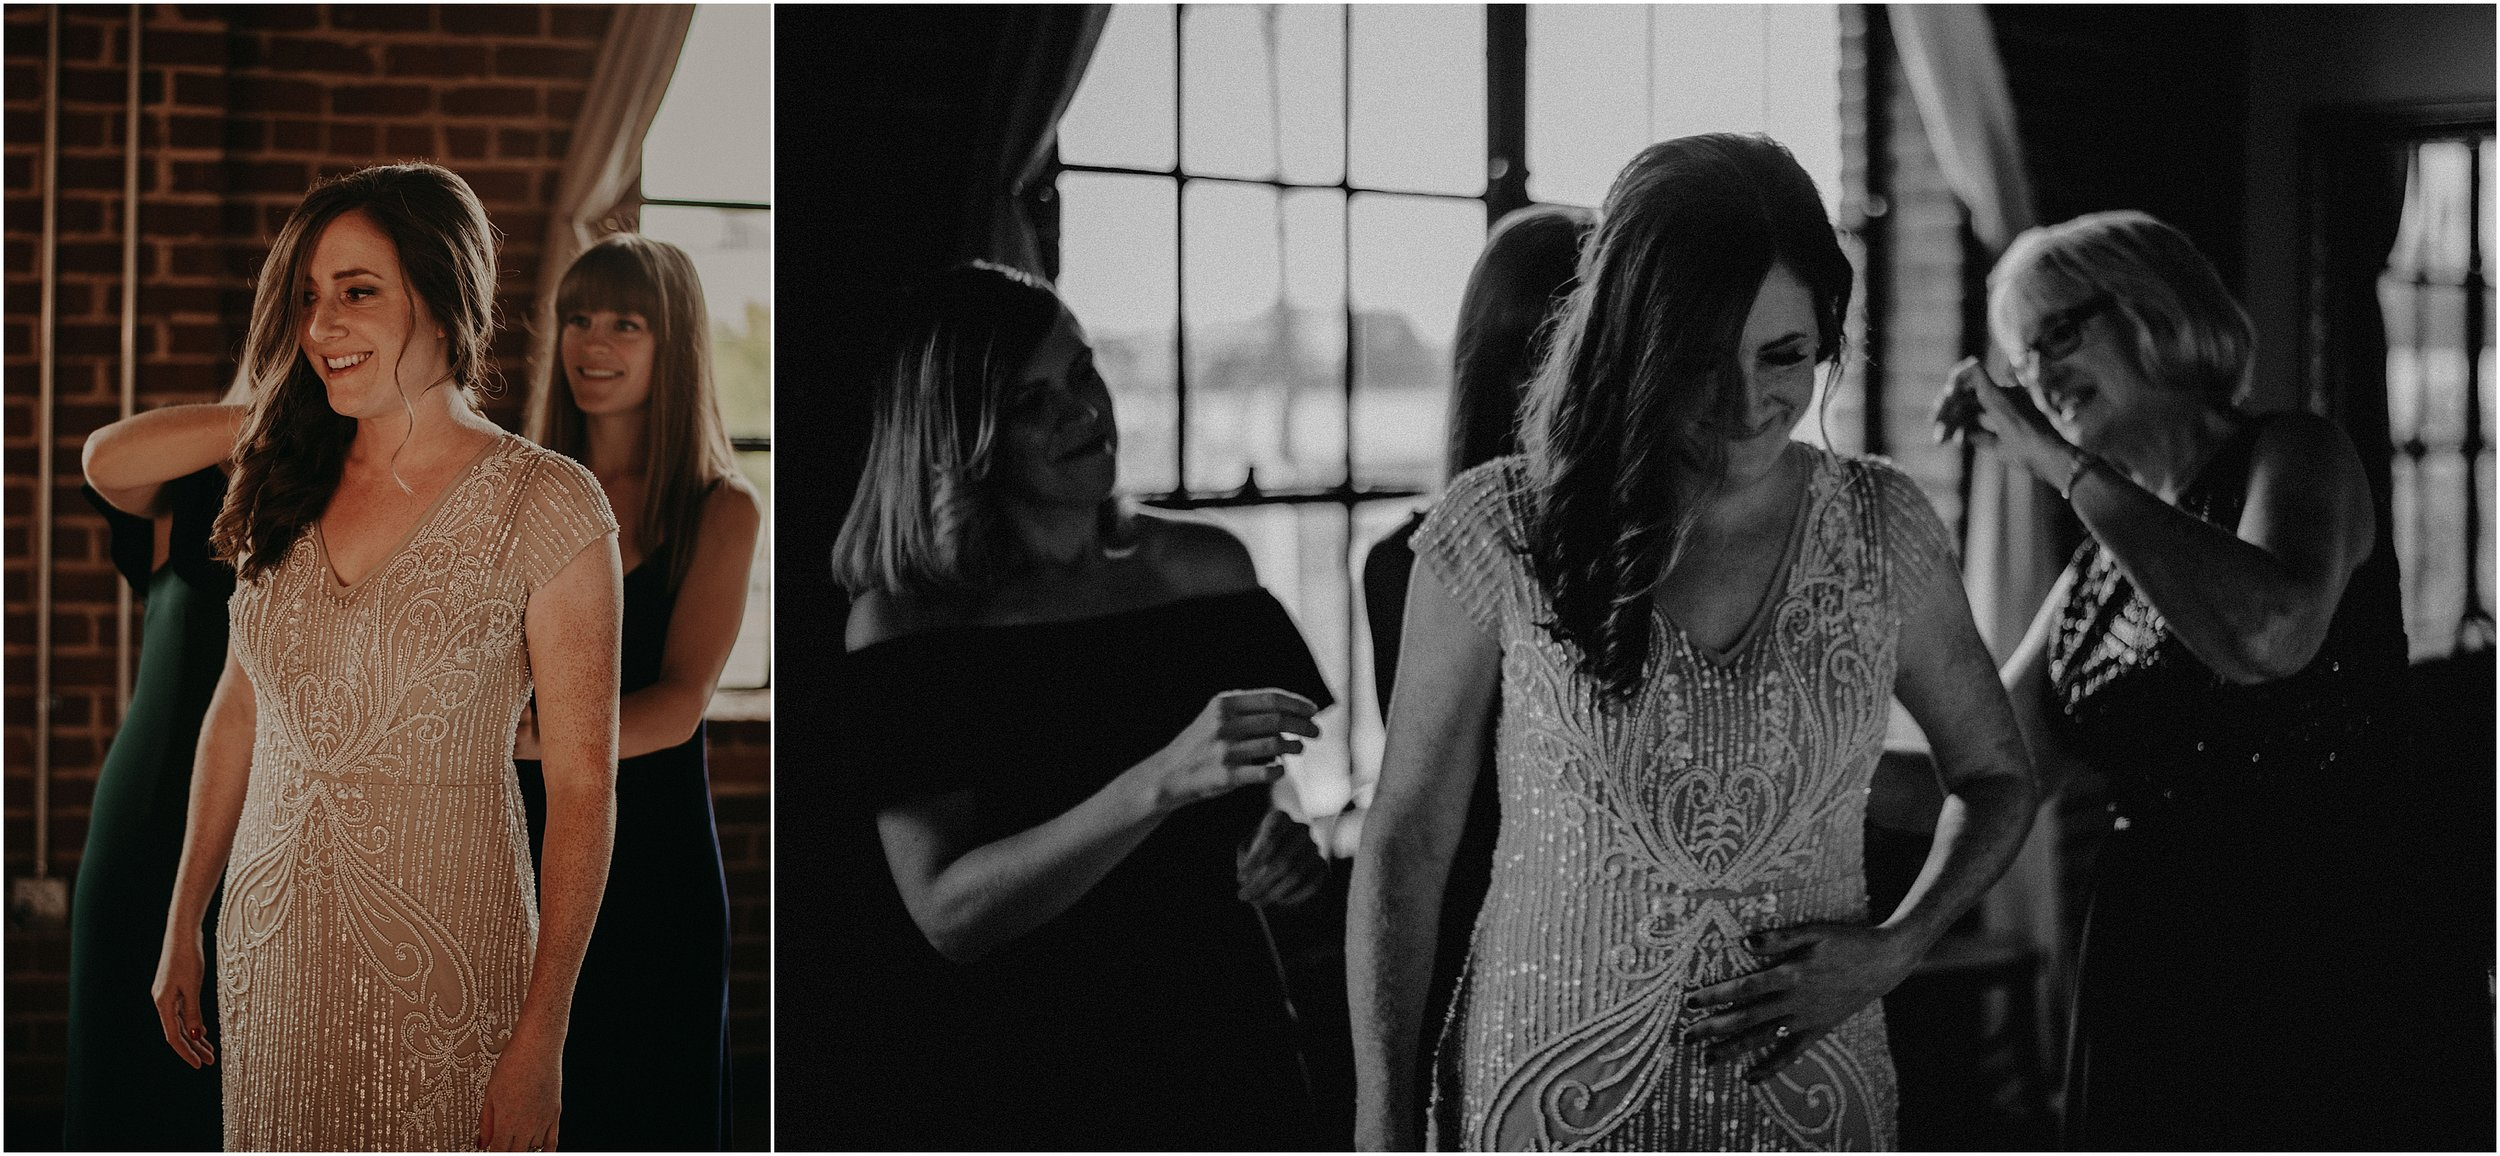 The bride's best friends help her into her BHLDN wedding gown